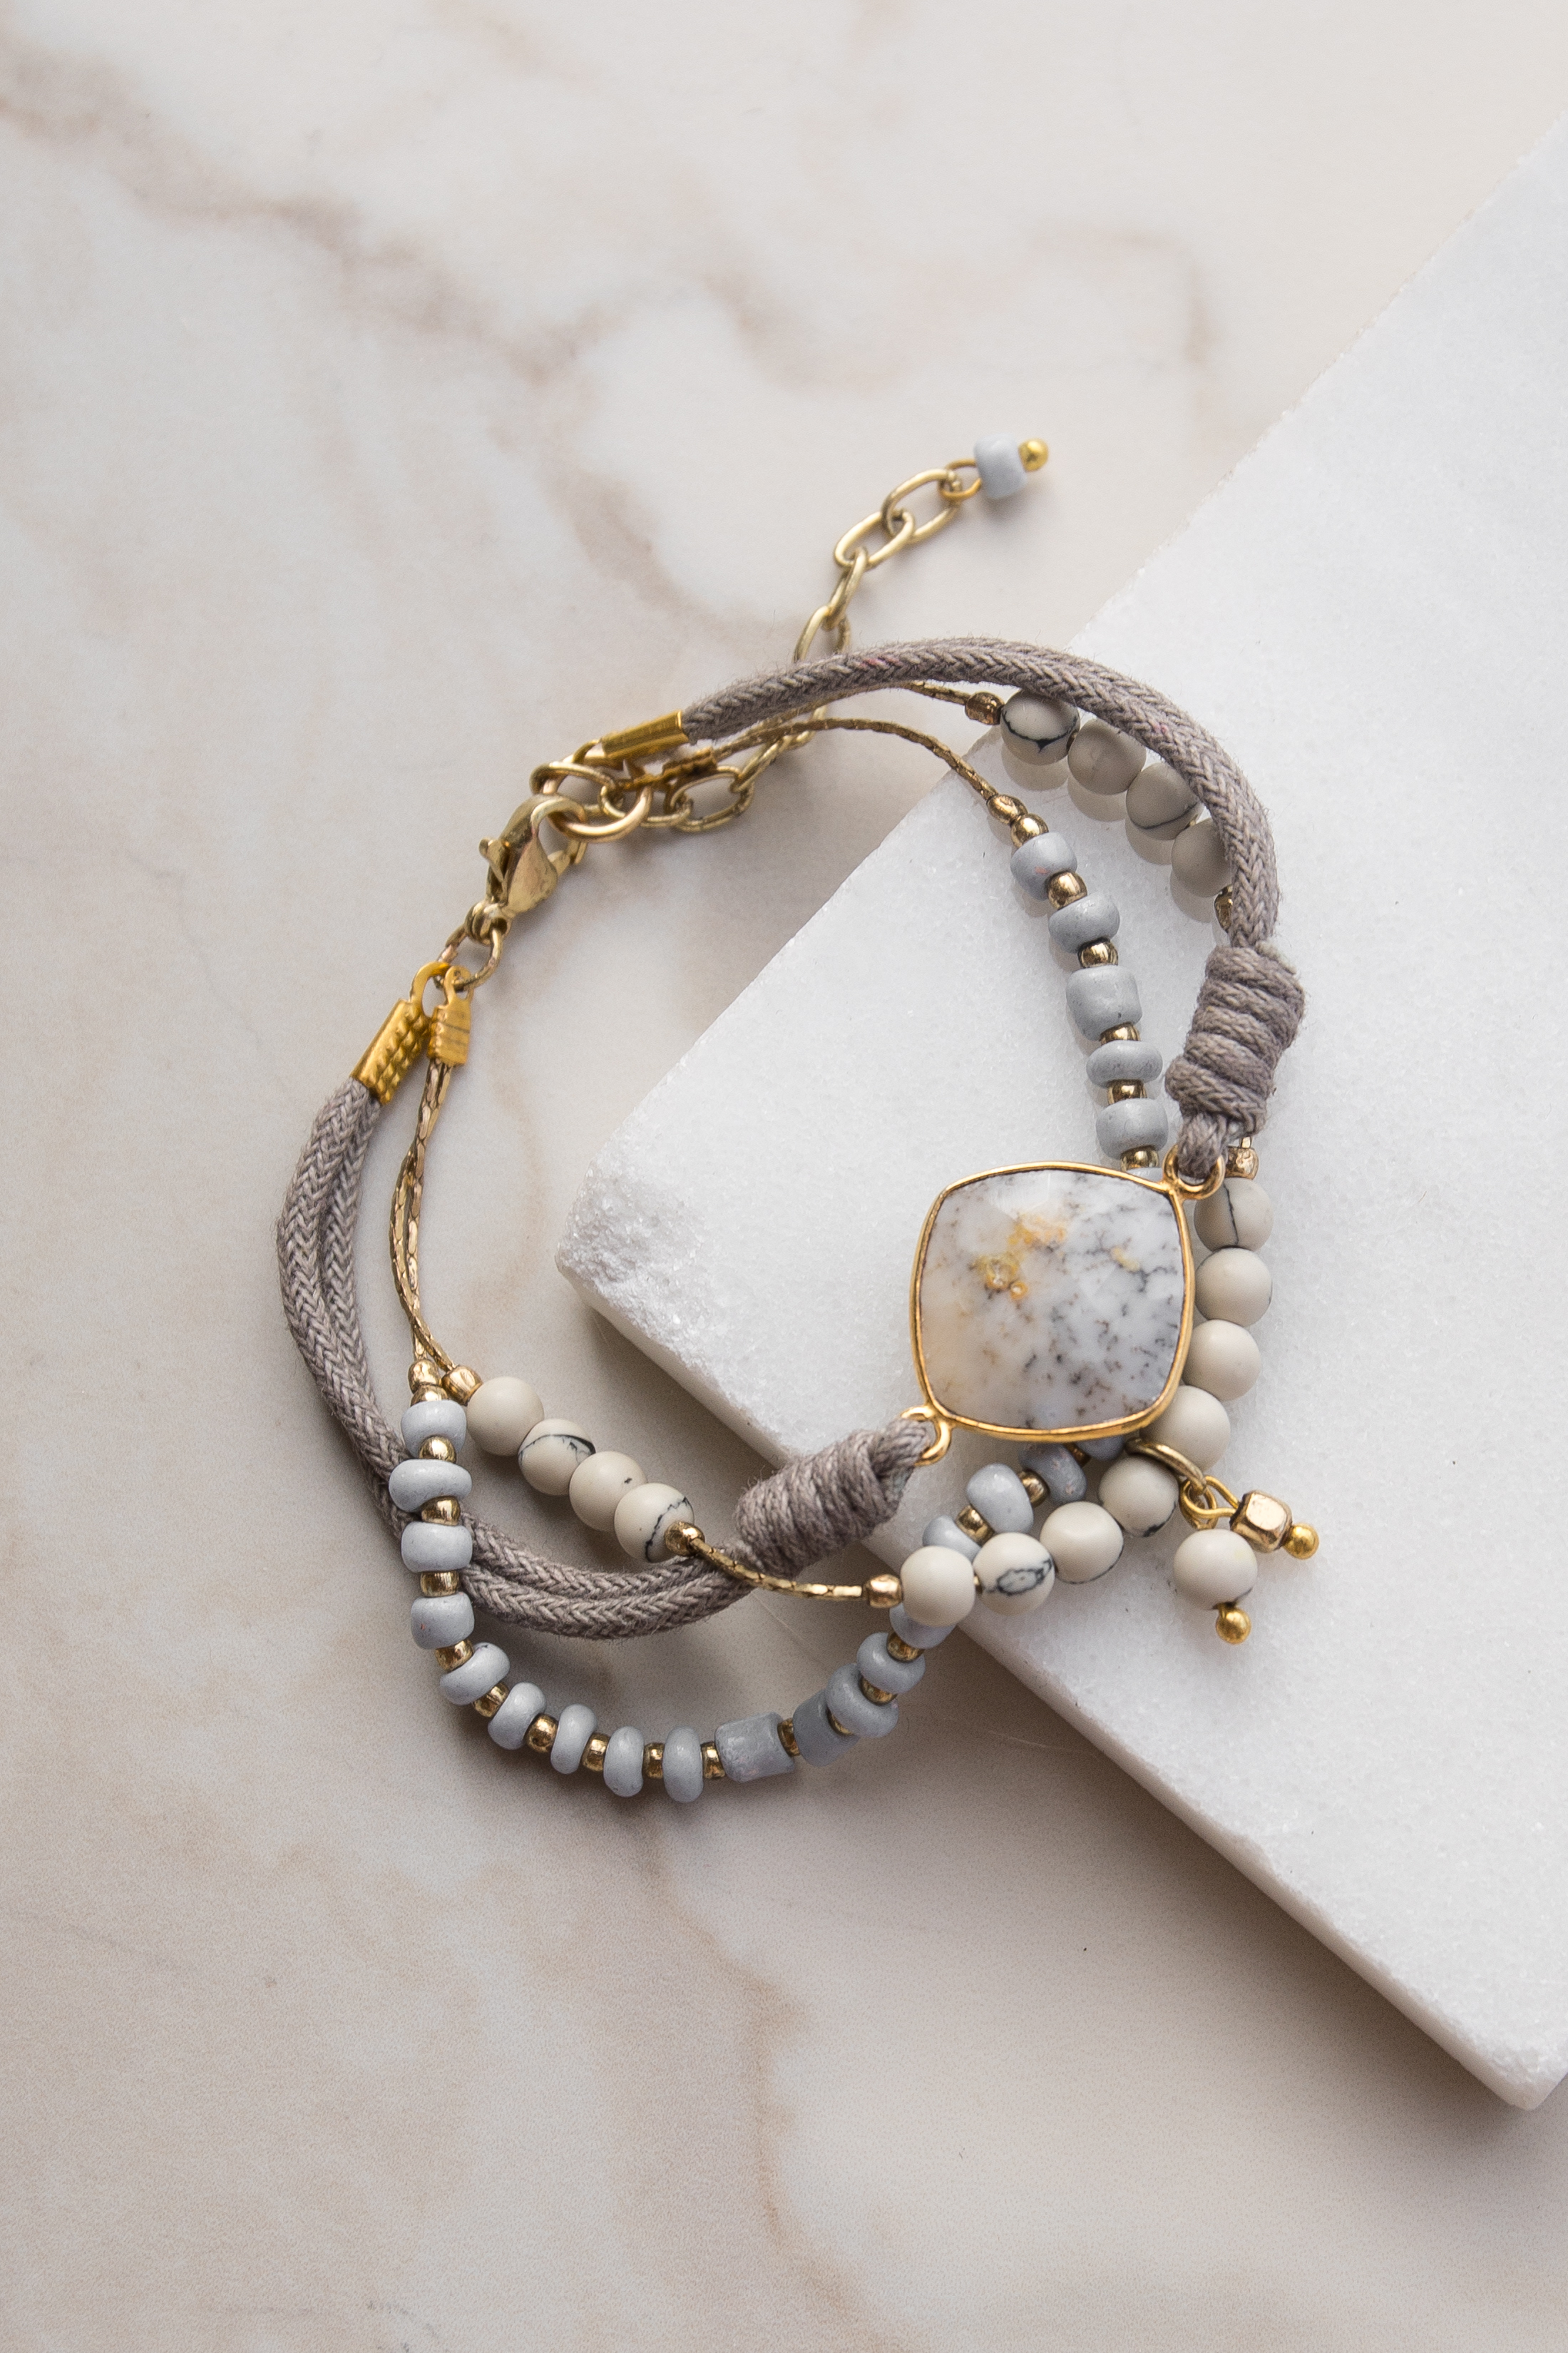 Ash Grey and White Layered Beaded Bracelet with Stone Detail